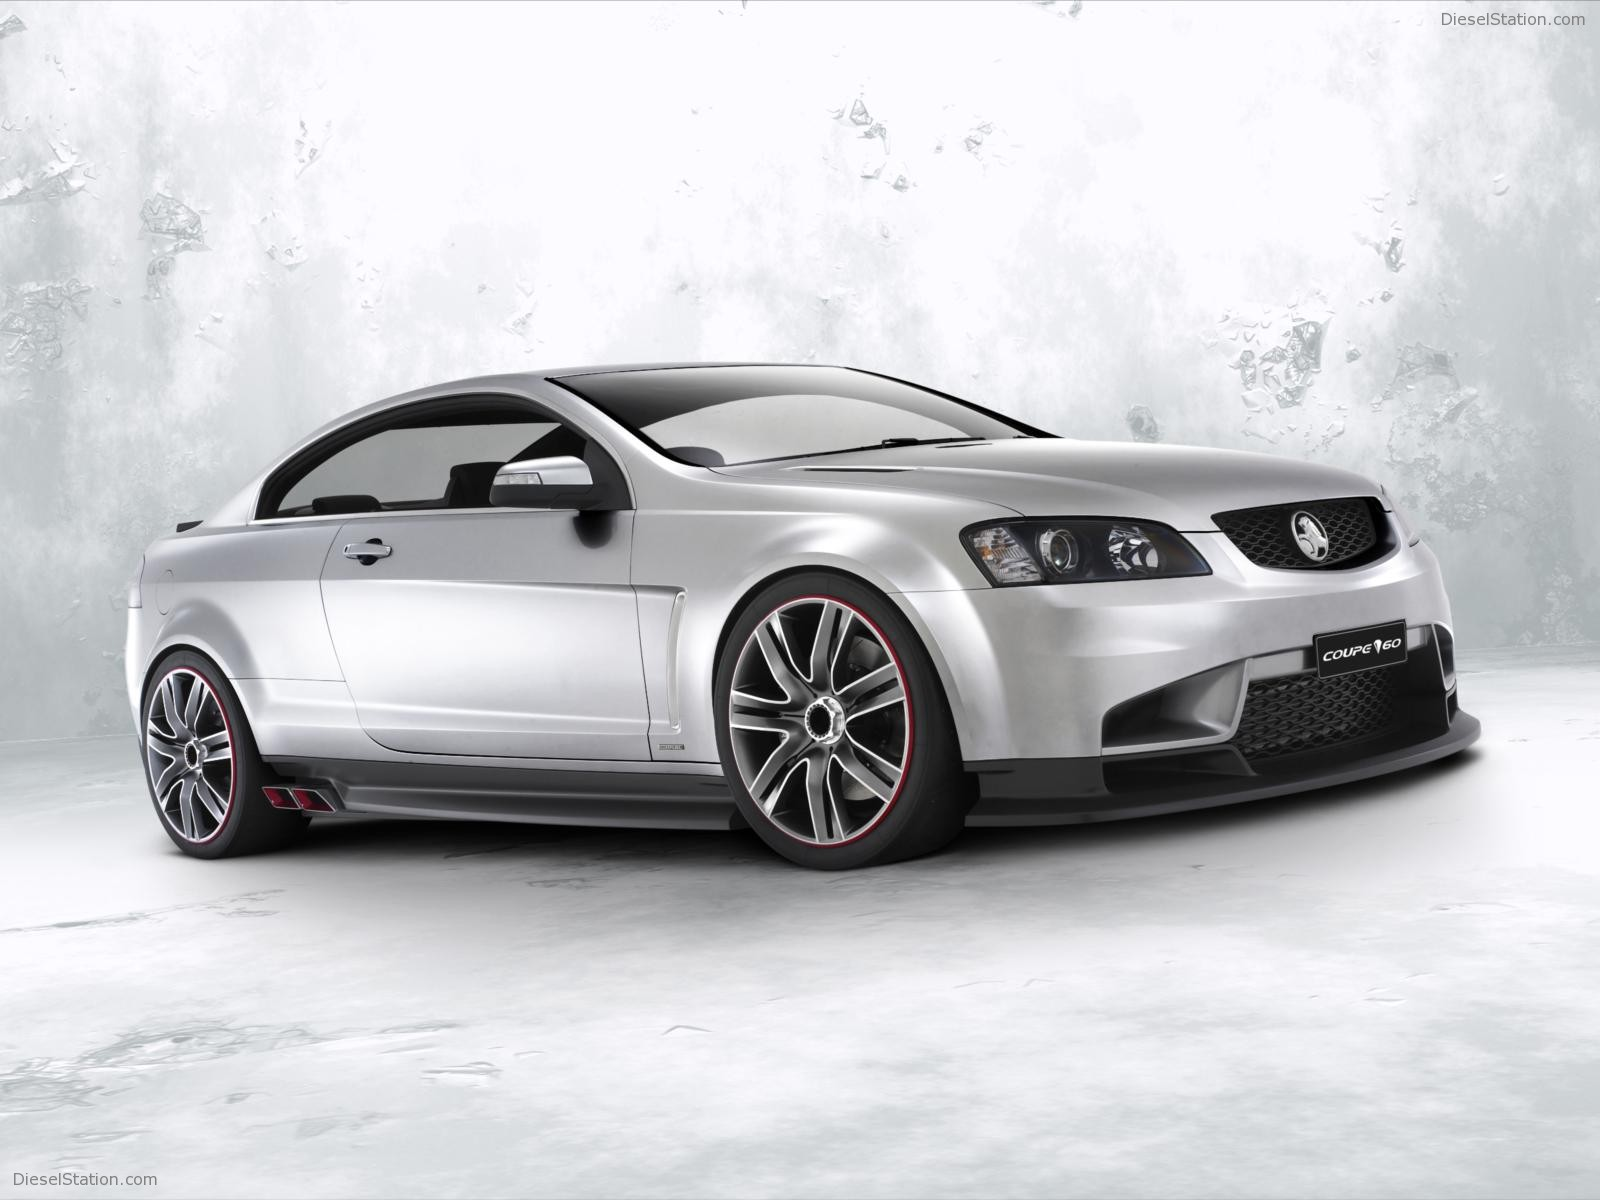 Holden coupe photo - 10